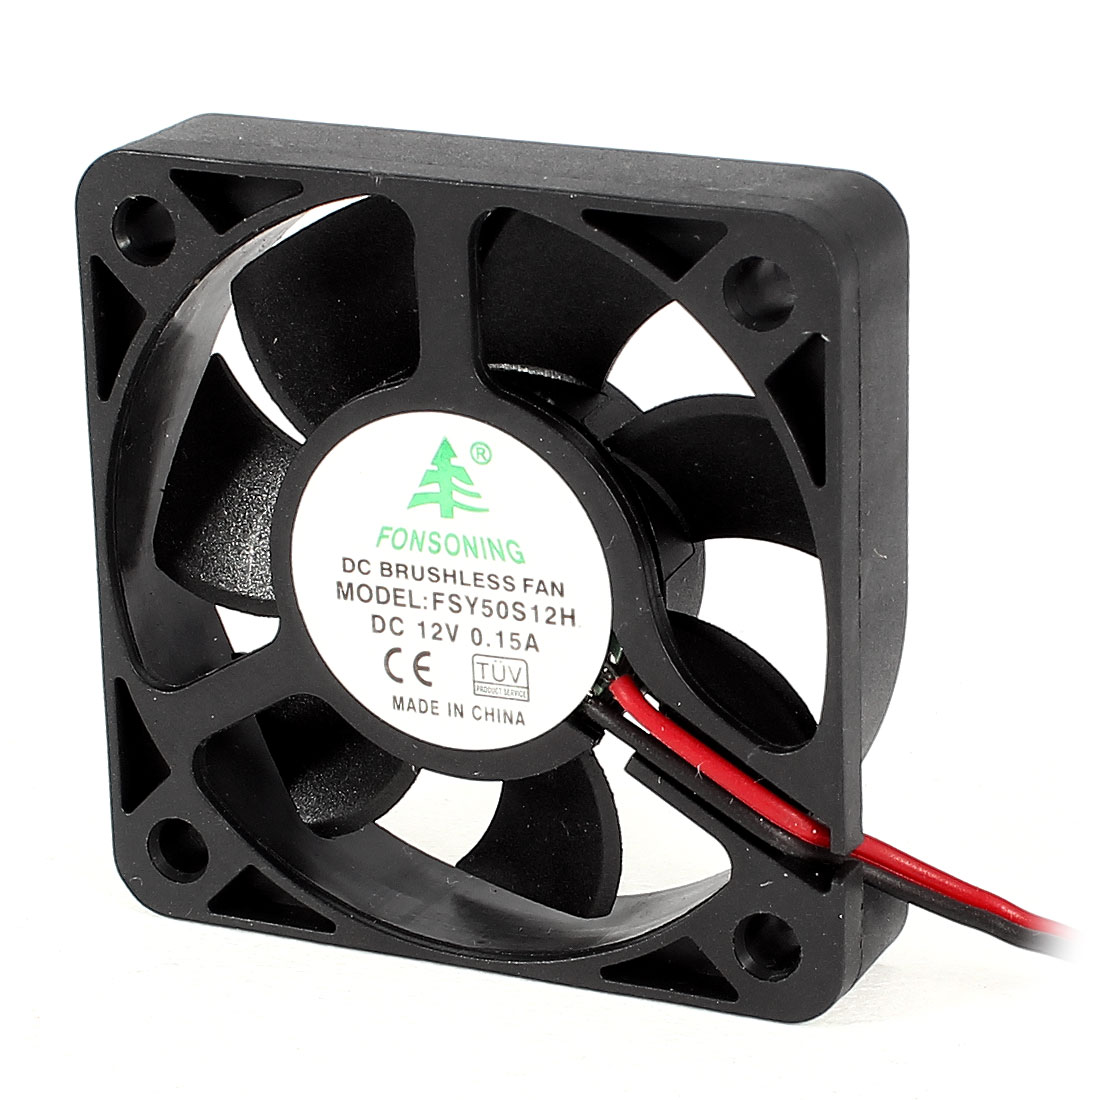 FSY50S12H 50mm x 50mm x 10mm 2Pole 12V DC Brushless Sleeve Bearing Cooling Fan for PC Case